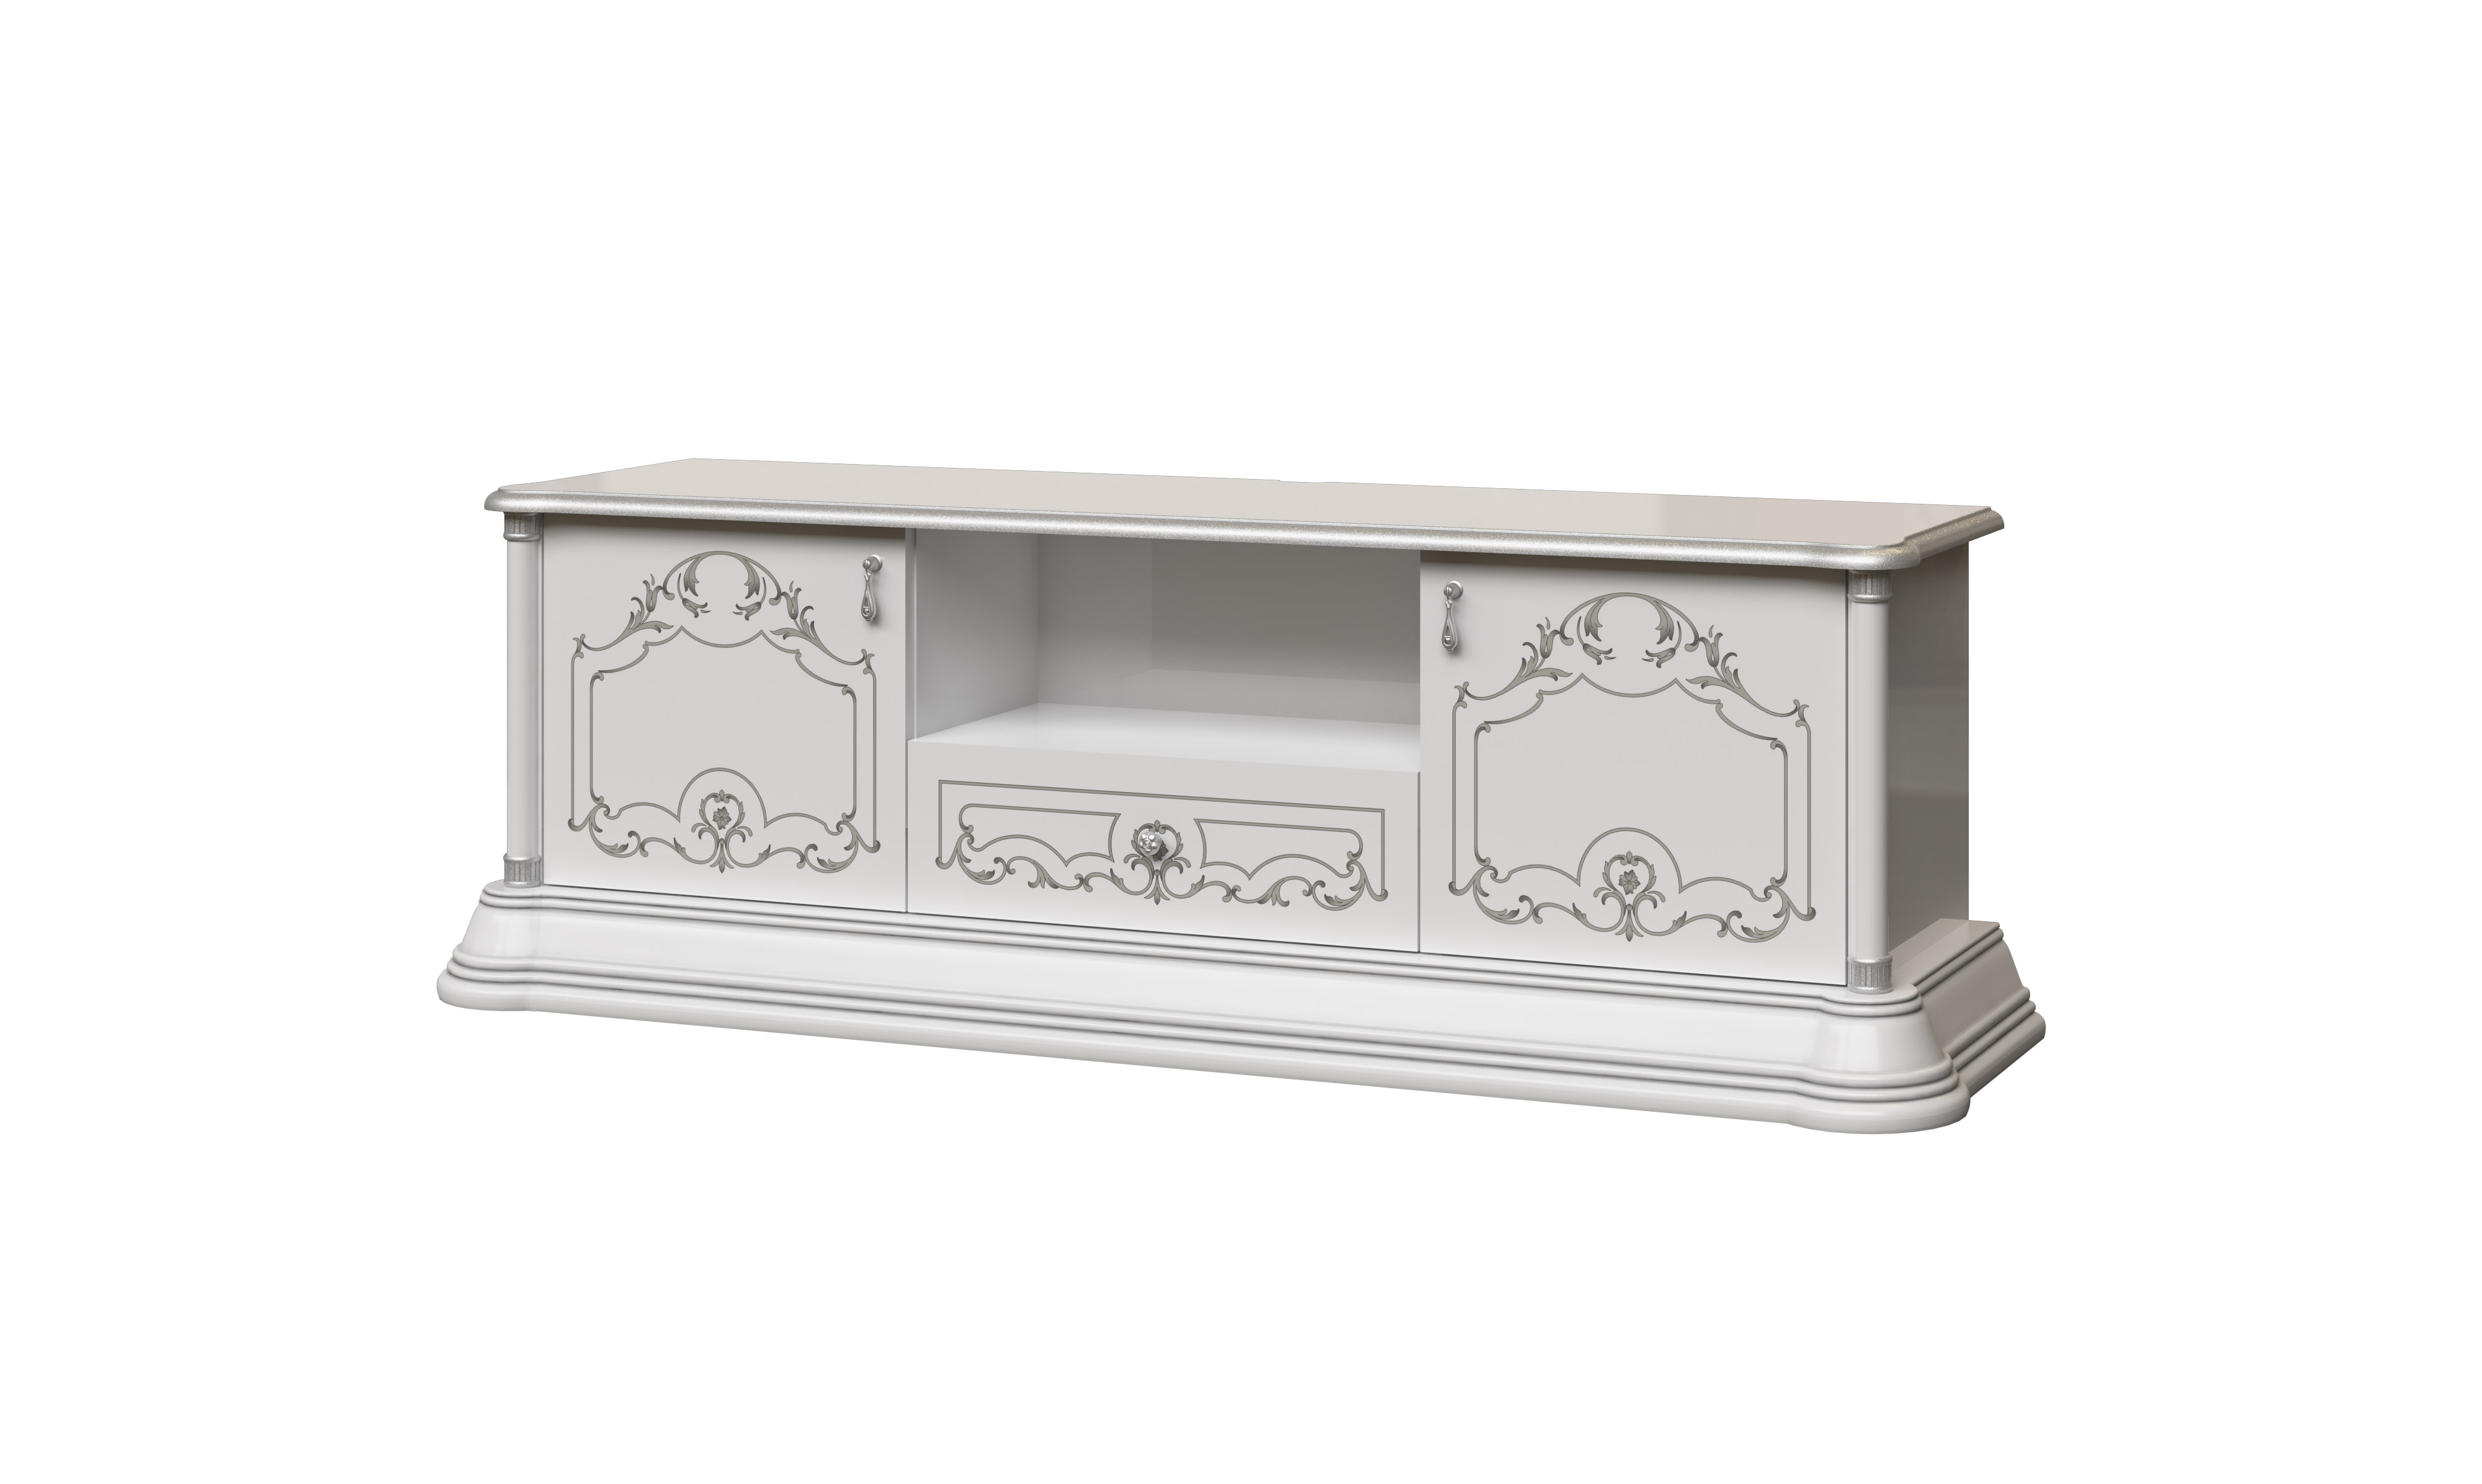 Barock Wohnwand Remo 2 in Weiss/Silber